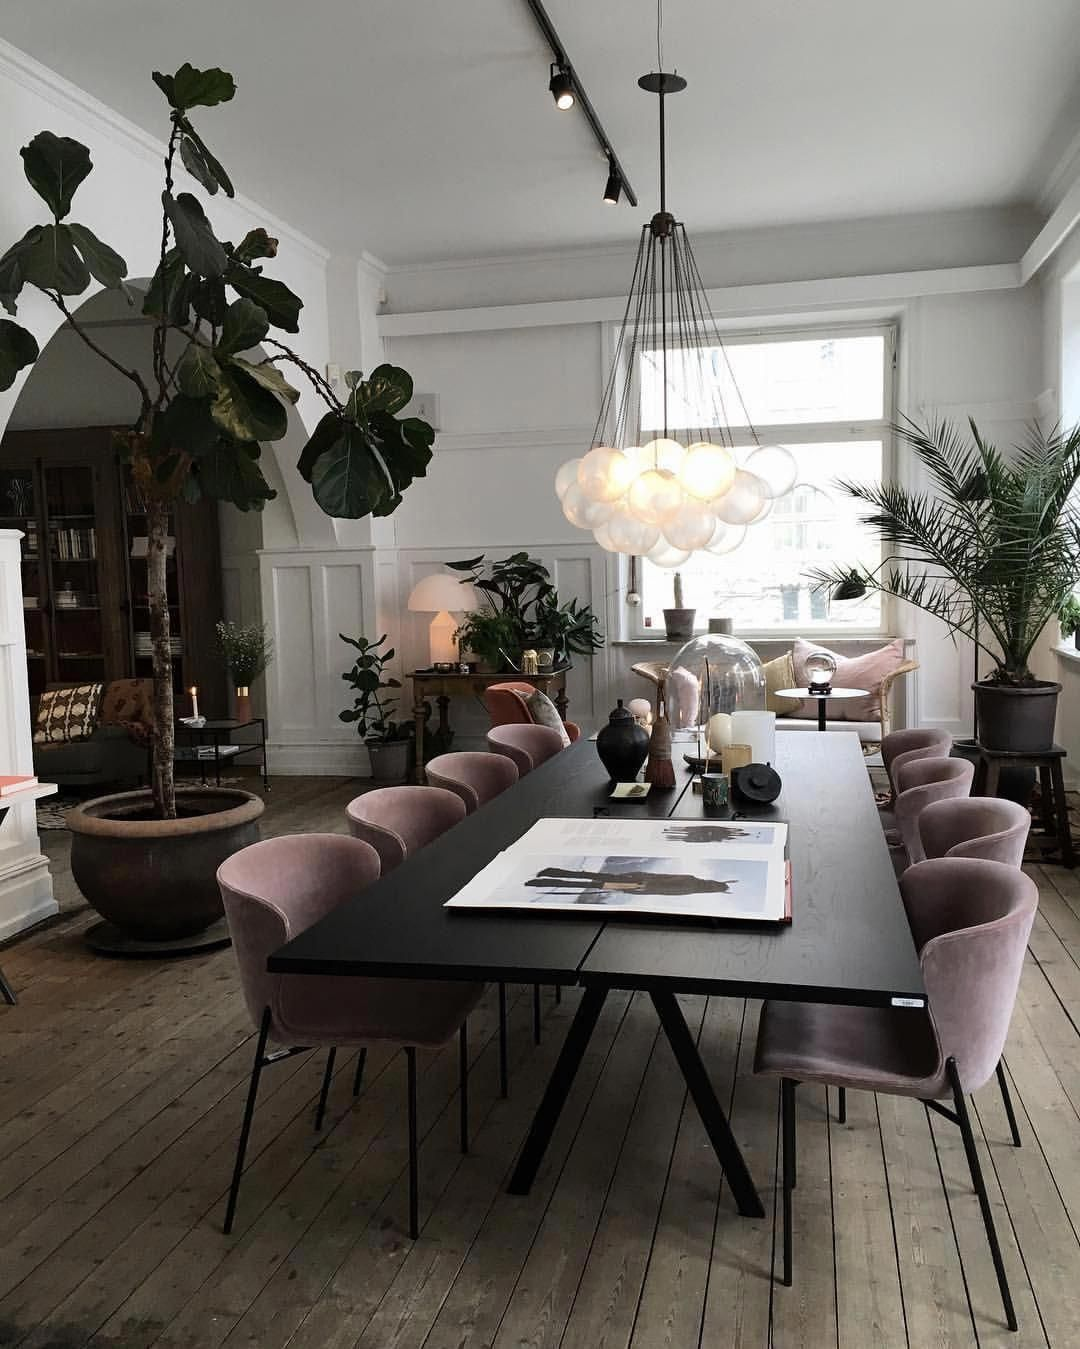 Moody Rustic Home Decor | Purple Gray Velvet Chairs | Velvet Dining Room Chairs | Velvet Dining Chairs | Dining Room Inspiration | Dining Room Ideas | Dining Room Decor | Globe Cluster Chandelier Light Fixture